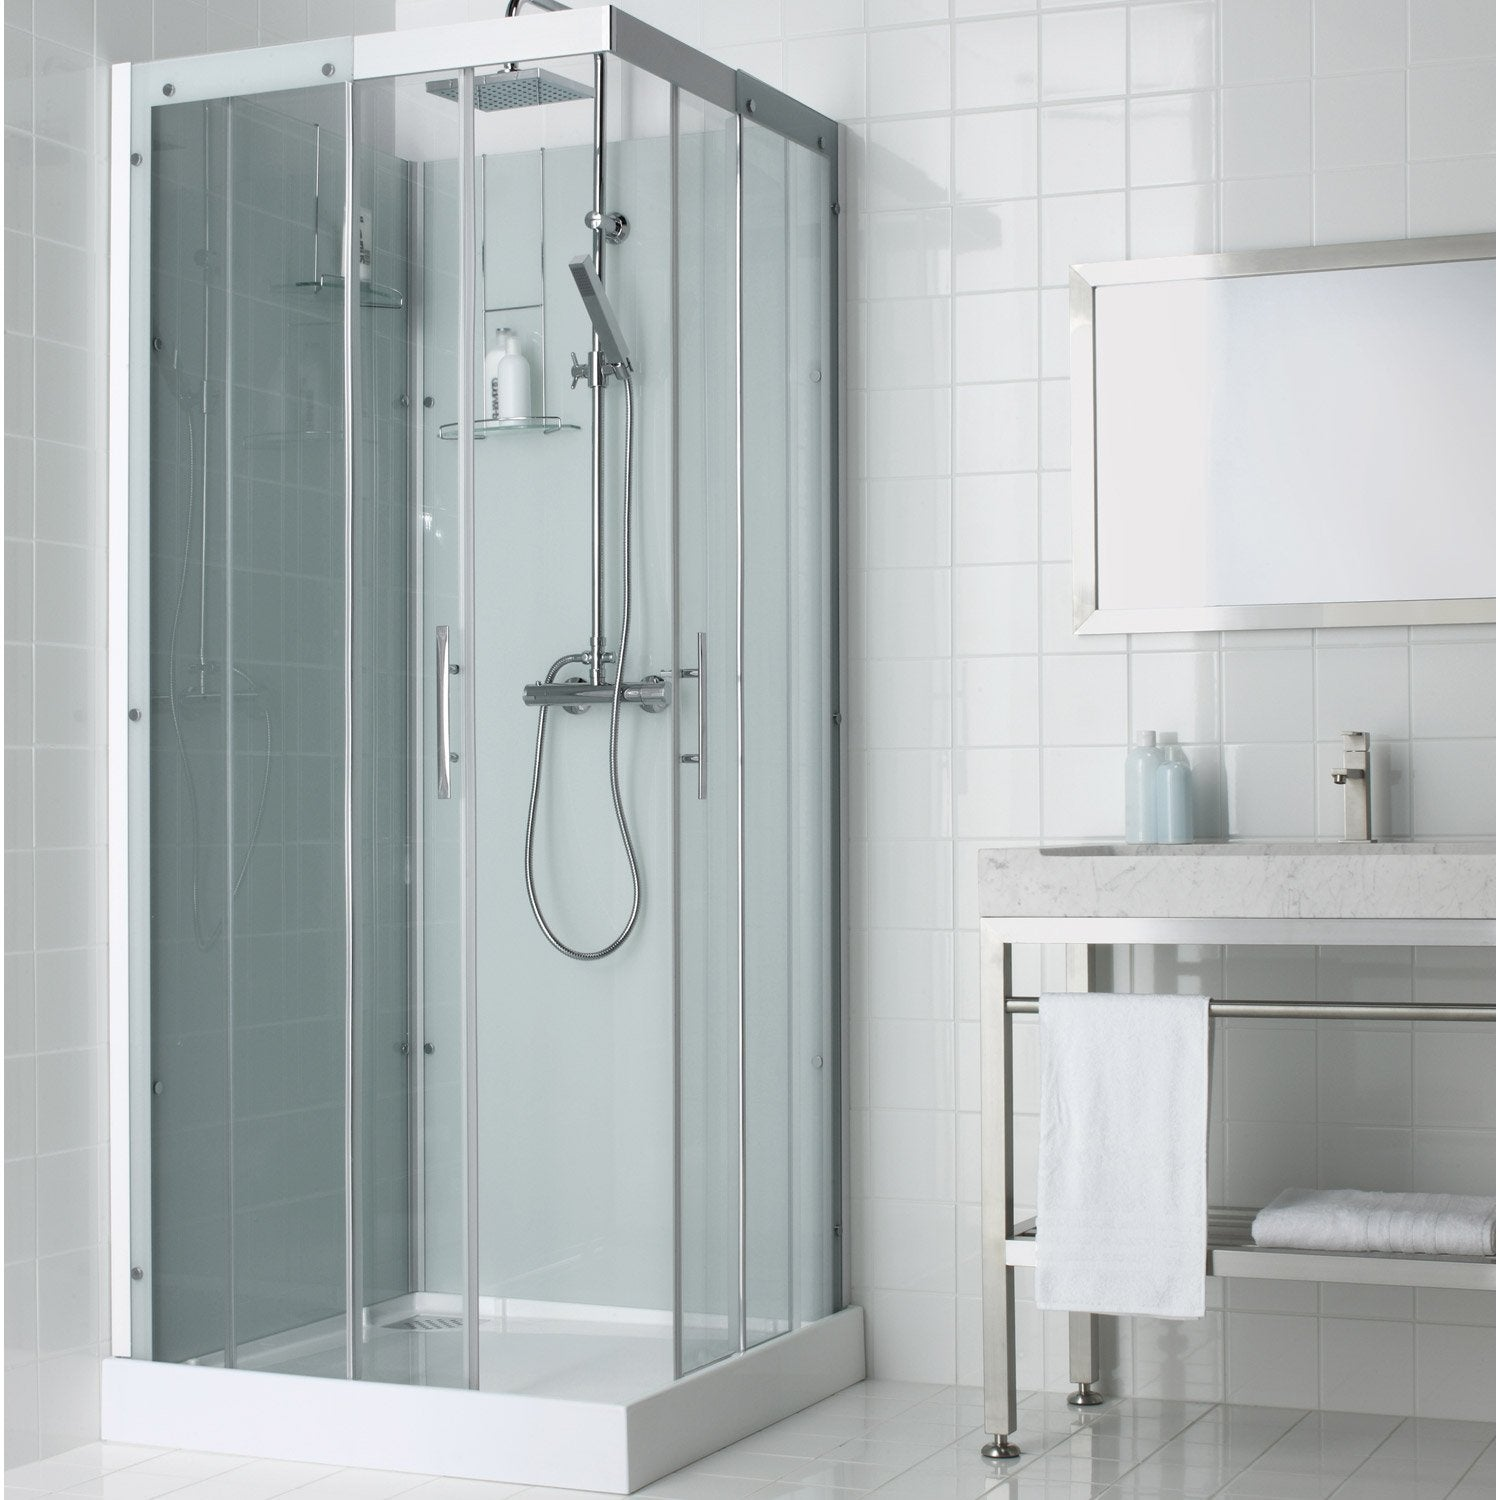 cabine de douche carr 90x90 cm thalaglass 2 thermo leroy merlin. Black Bedroom Furniture Sets. Home Design Ideas